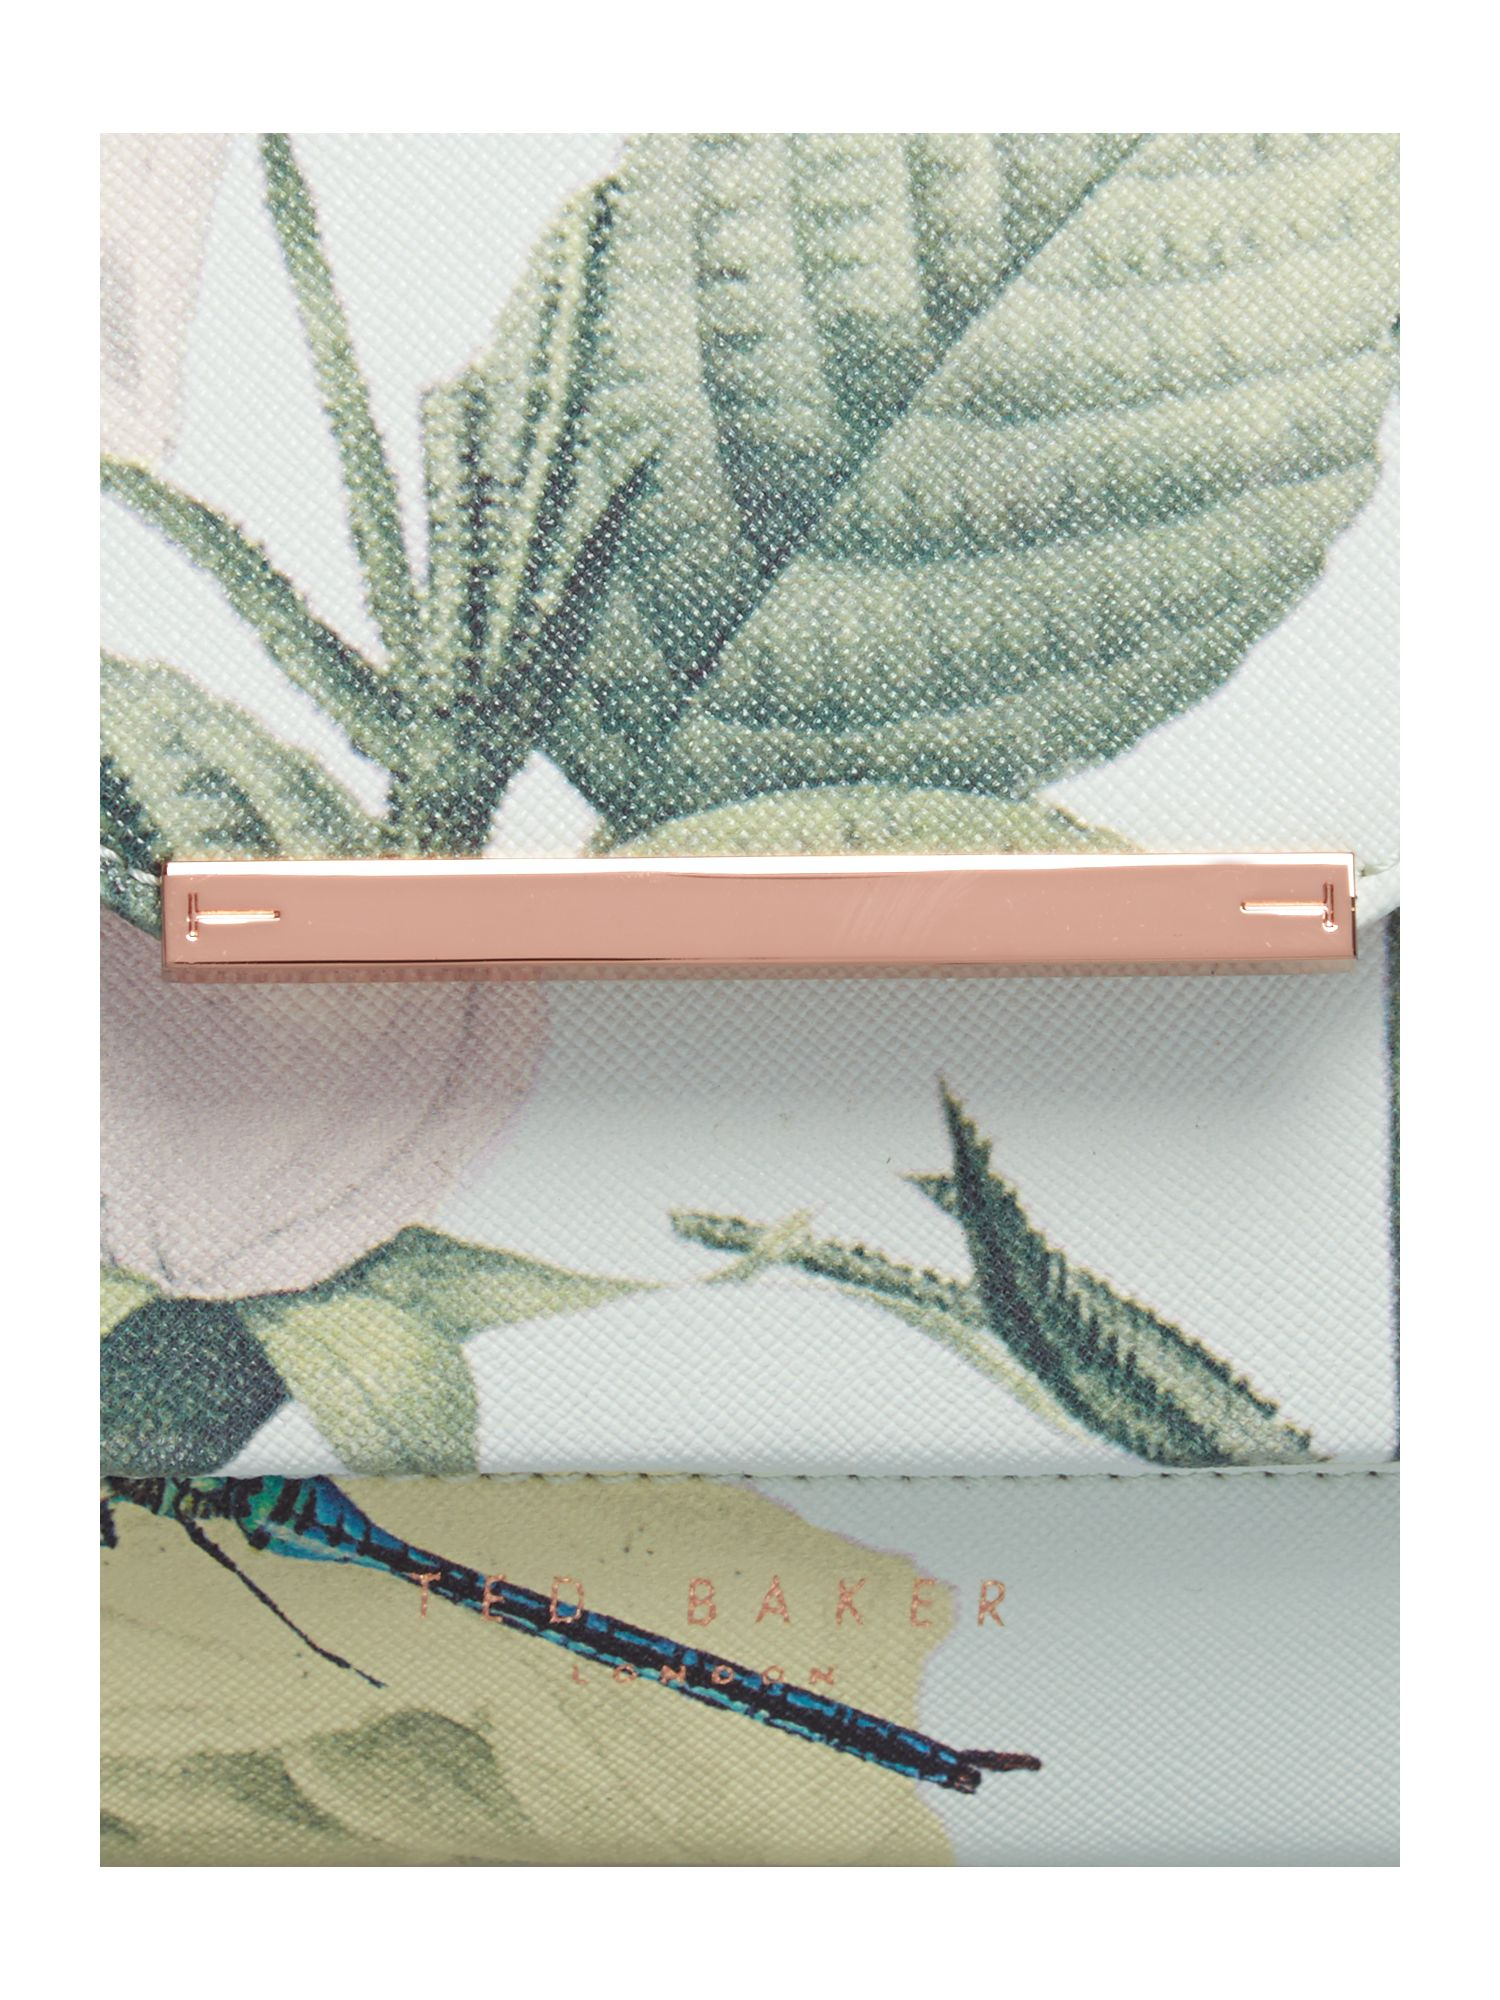 Ted Baker Mint Distinguished Rose Lady Cross Body Bag in Green